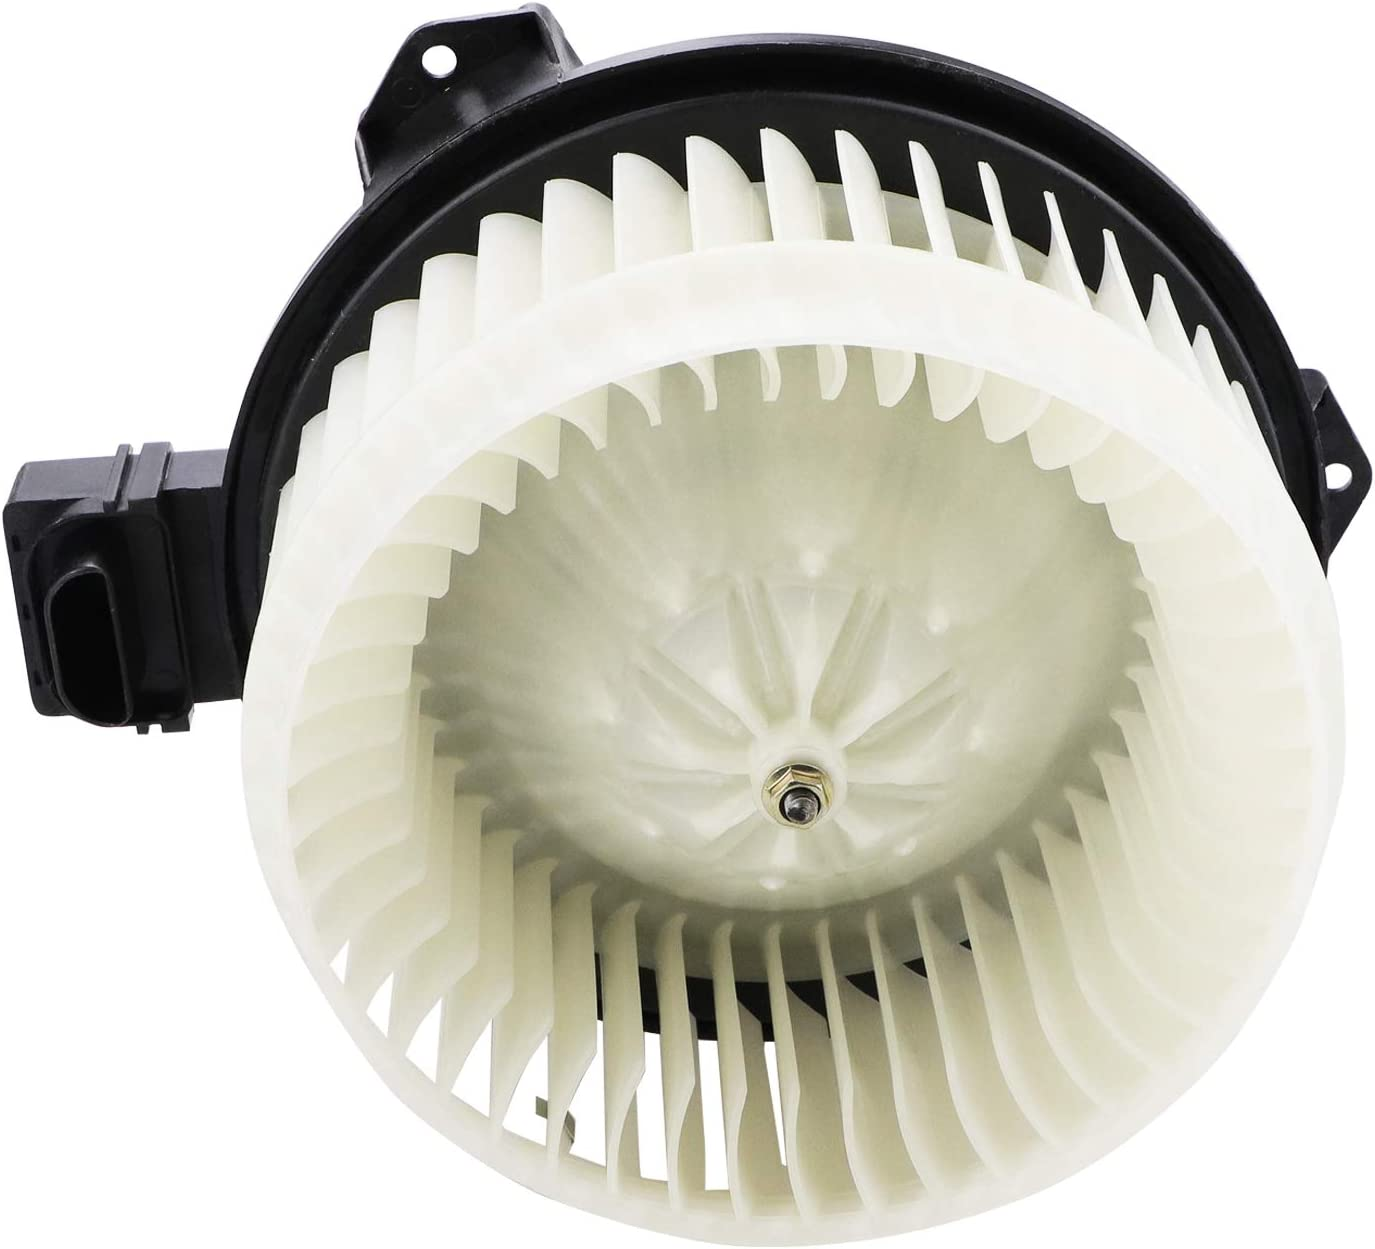 Heater Blower Motor with Cage HVAC Blower Motor Assembly for 2004 2005 2006 Scion Xa /& Xb 2003 2004 2005 Toyota Echo Replaces 87103-52080 700172